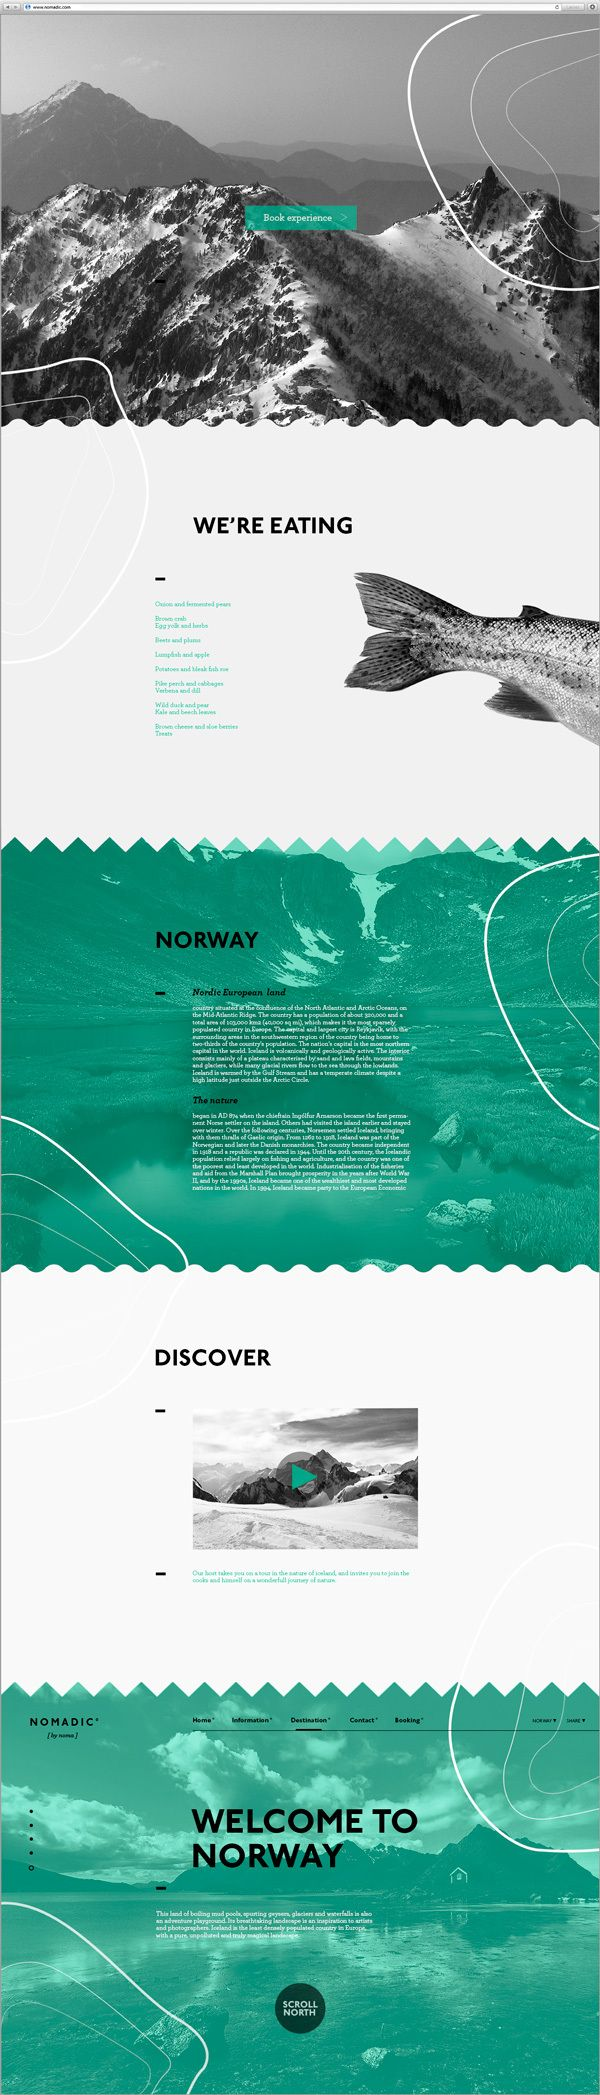 Nomadic [by noma] on Behance